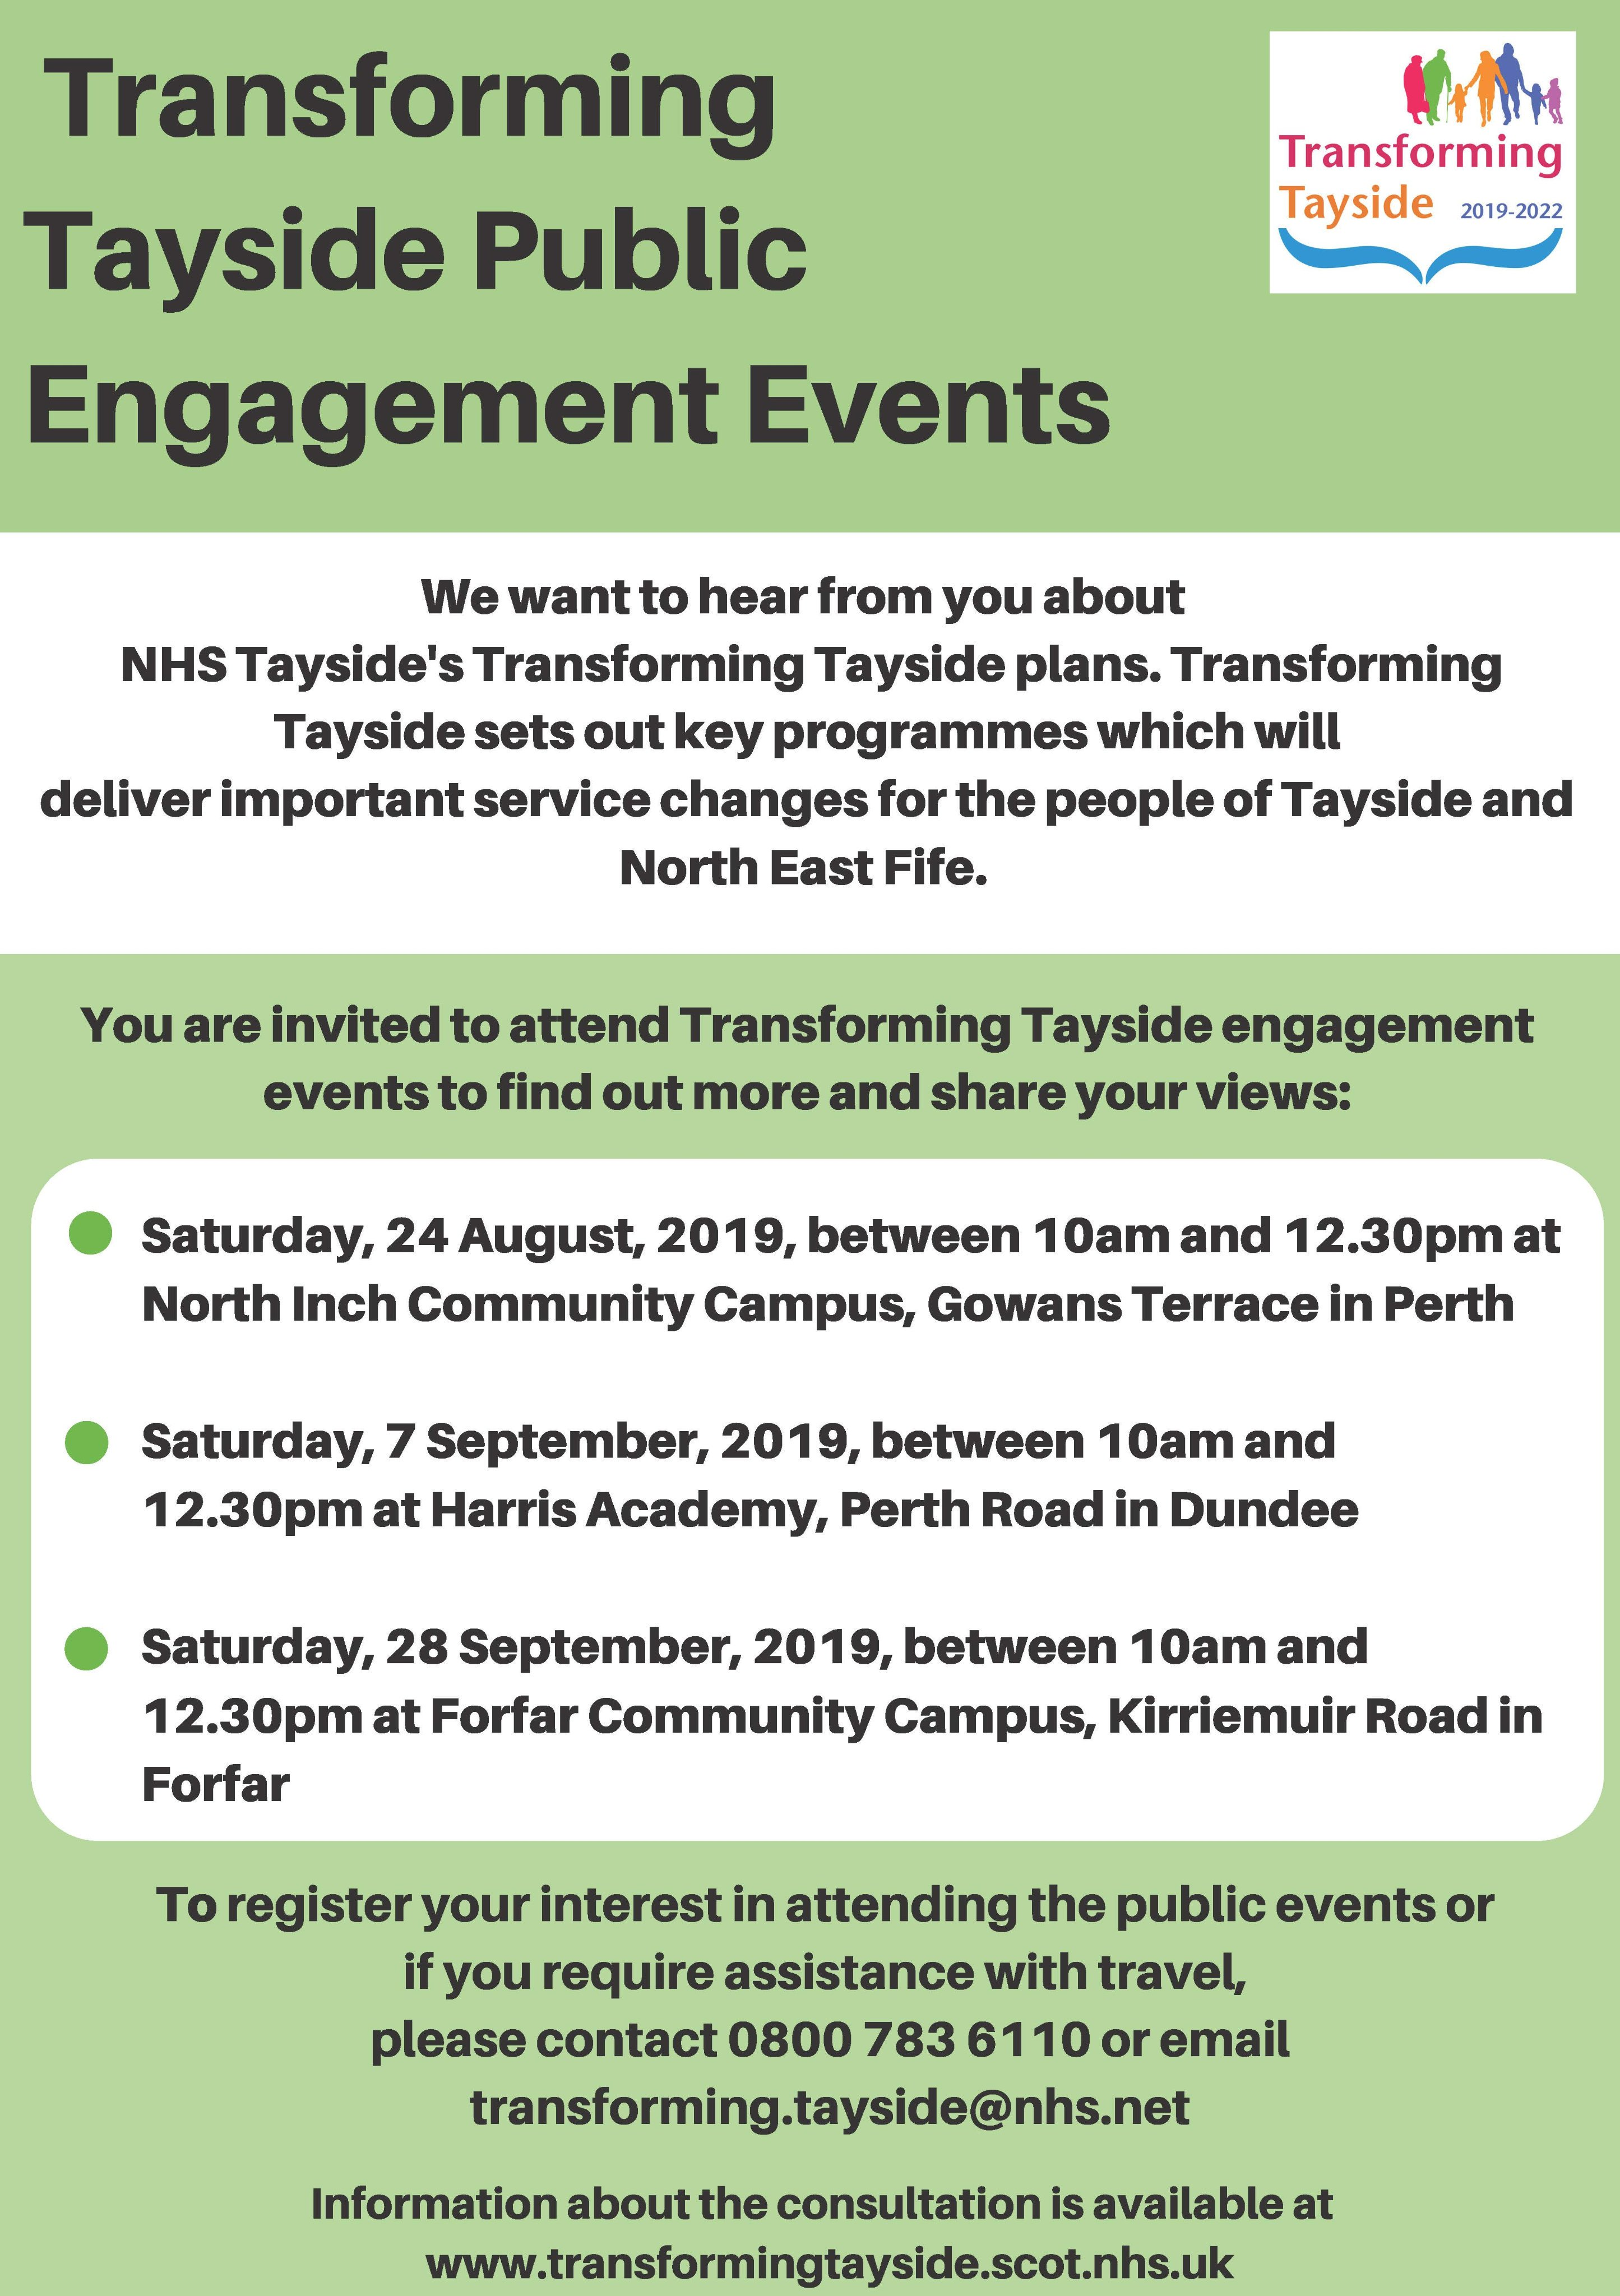 Transforming Tayside Poster